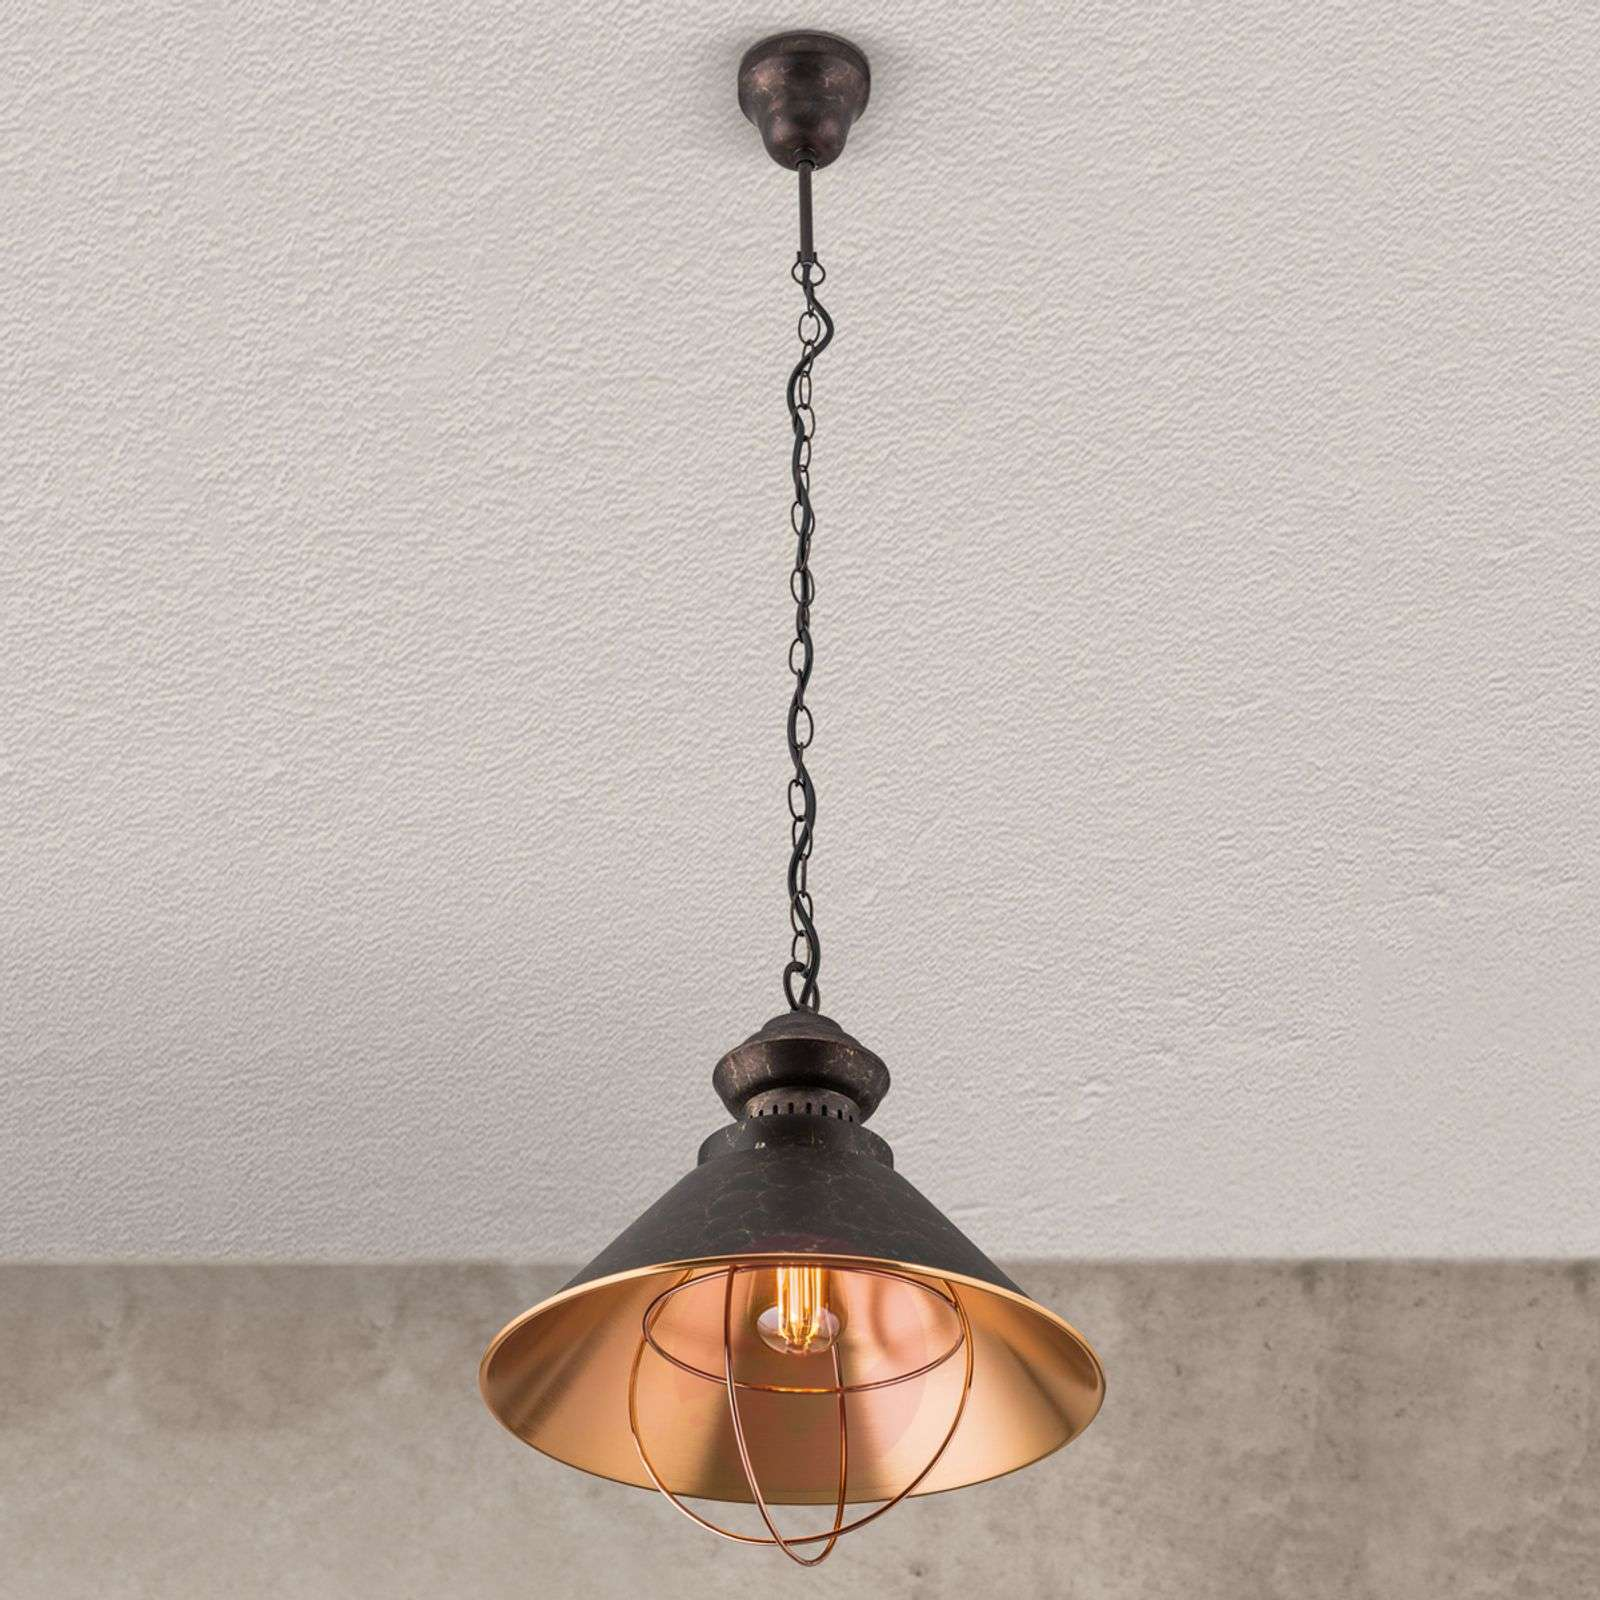 Suspension rustique Shanta, à une lampe-7255169-07